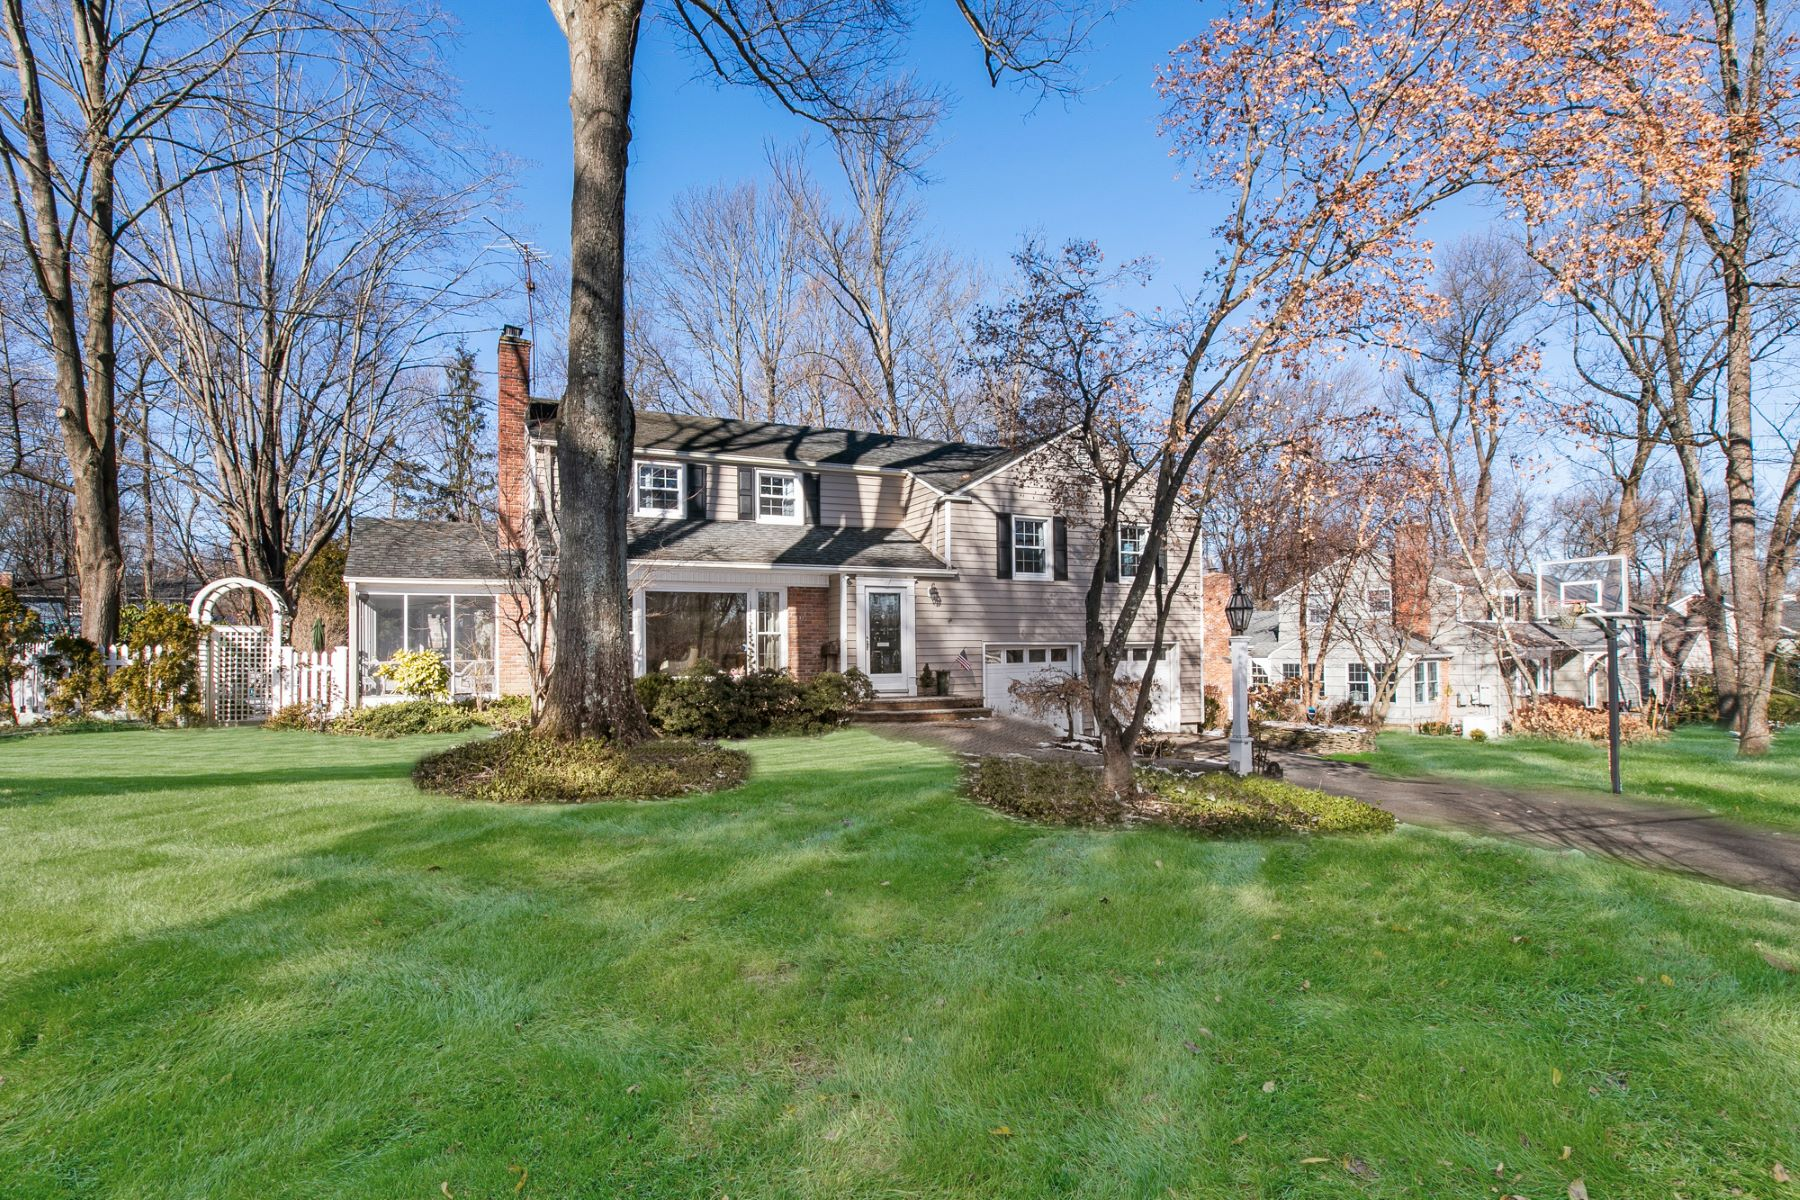 Single Family Homes for Active at Inviting Colonial in the Heart of Chatham! 23 Lenape Trail Chatham, New Jersey 07928 United States